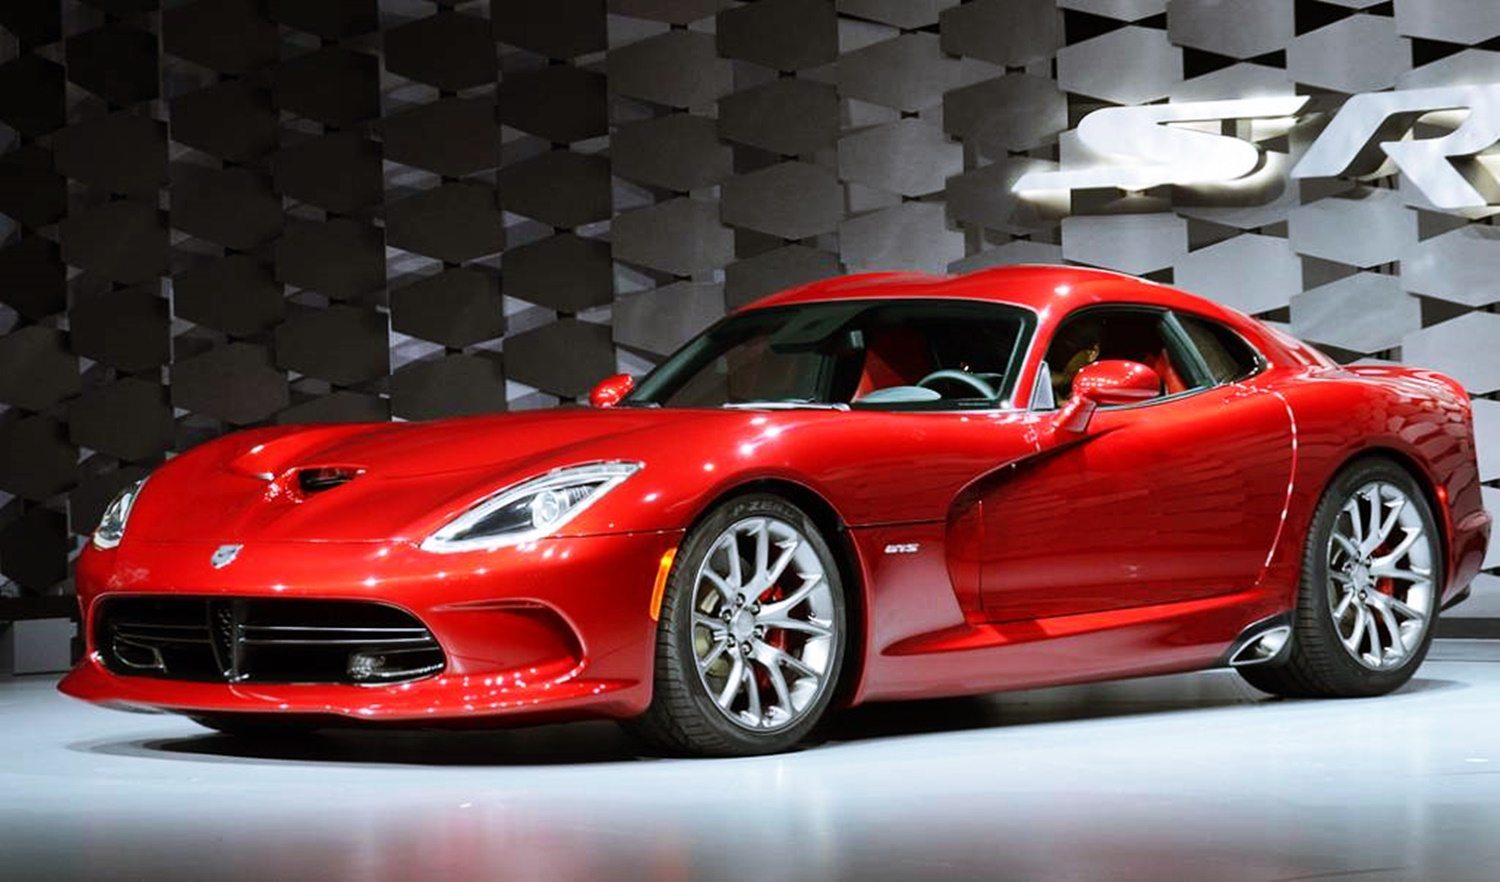 12 Gallery of Dodge Viper Acr 2020 Spesification by Dodge Viper Acr 2020